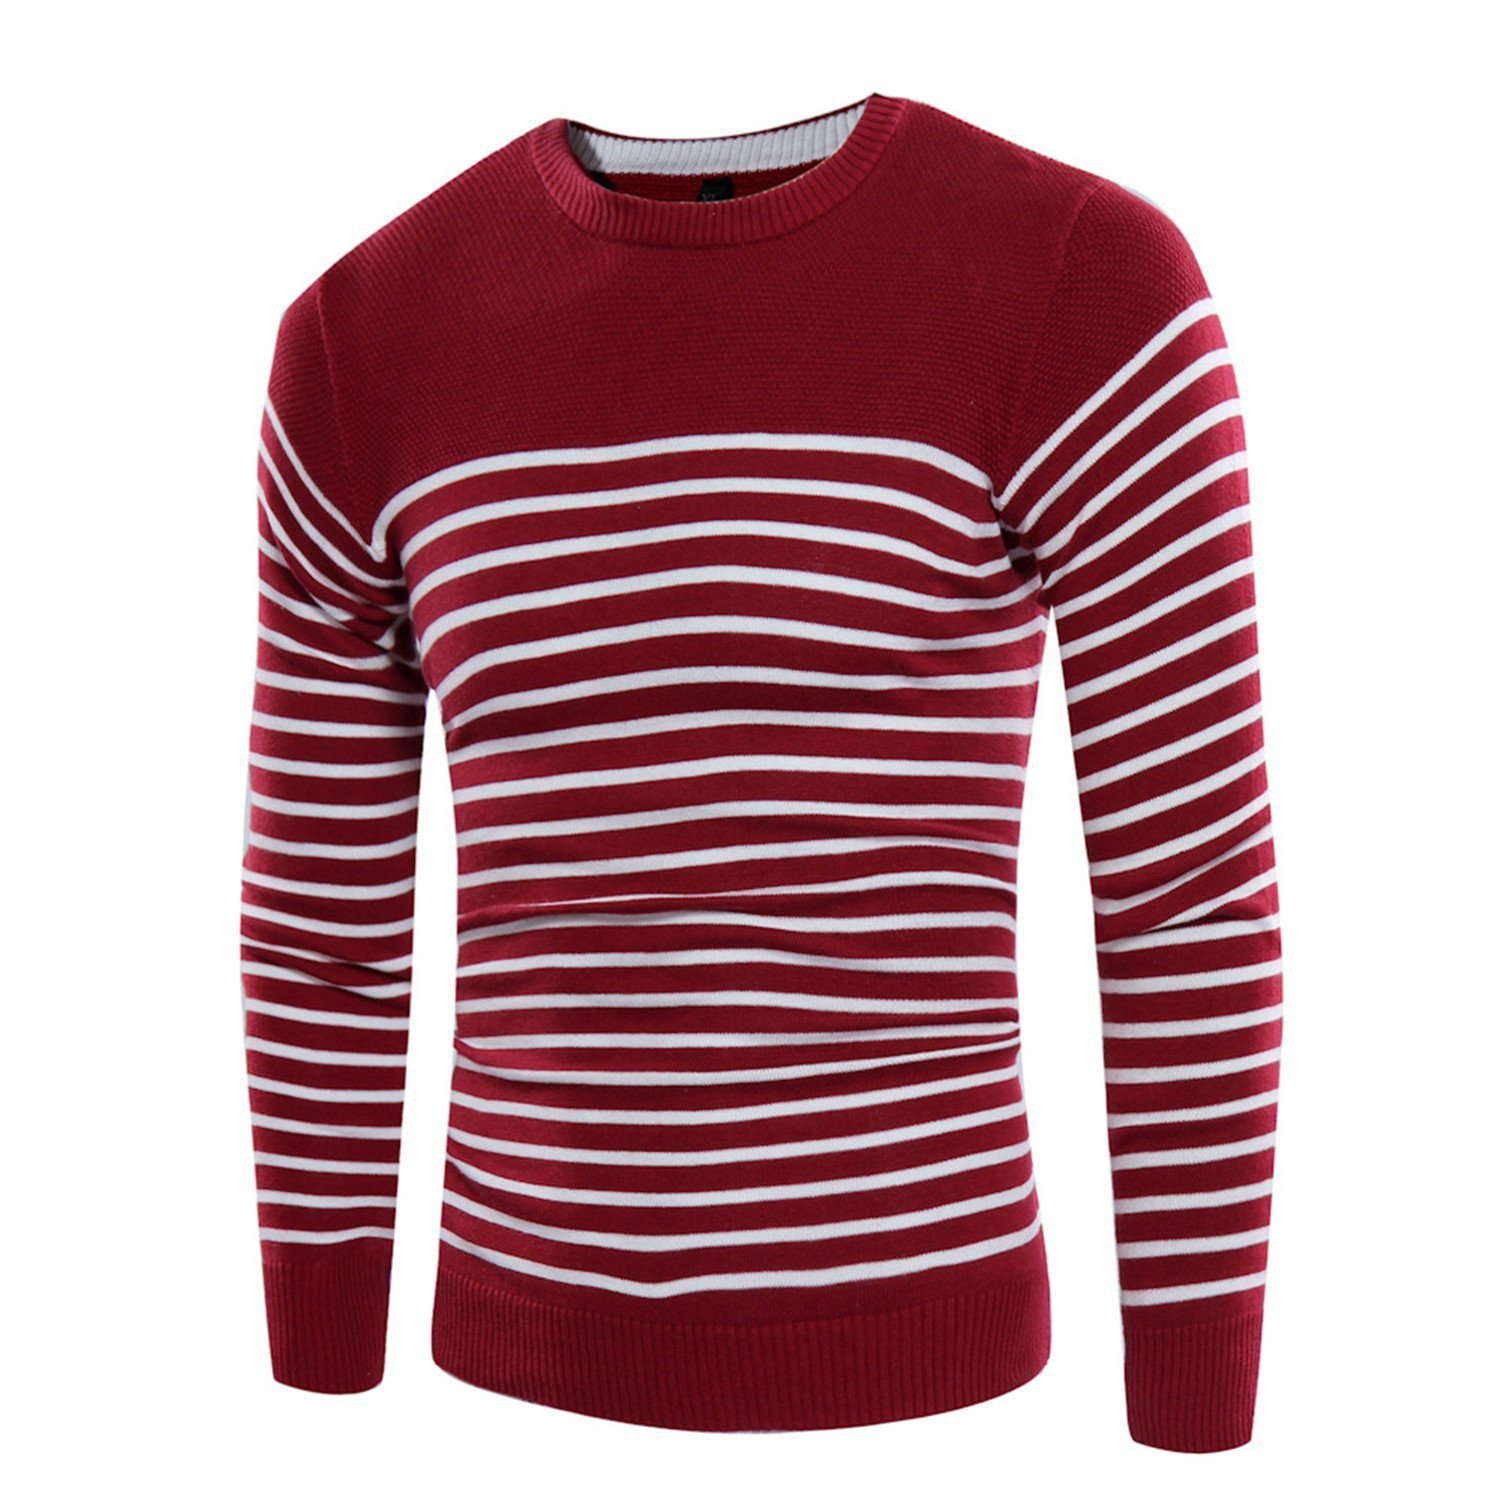 Cheryl Bull Trendy Knitted Sweaters O-Neck Jumper Men's Cotton Pullover Knitting White Black Navy Grey Striped Sweater Wine RedX-Large by Cheryl Bull Business-suit-vests (Image #2)